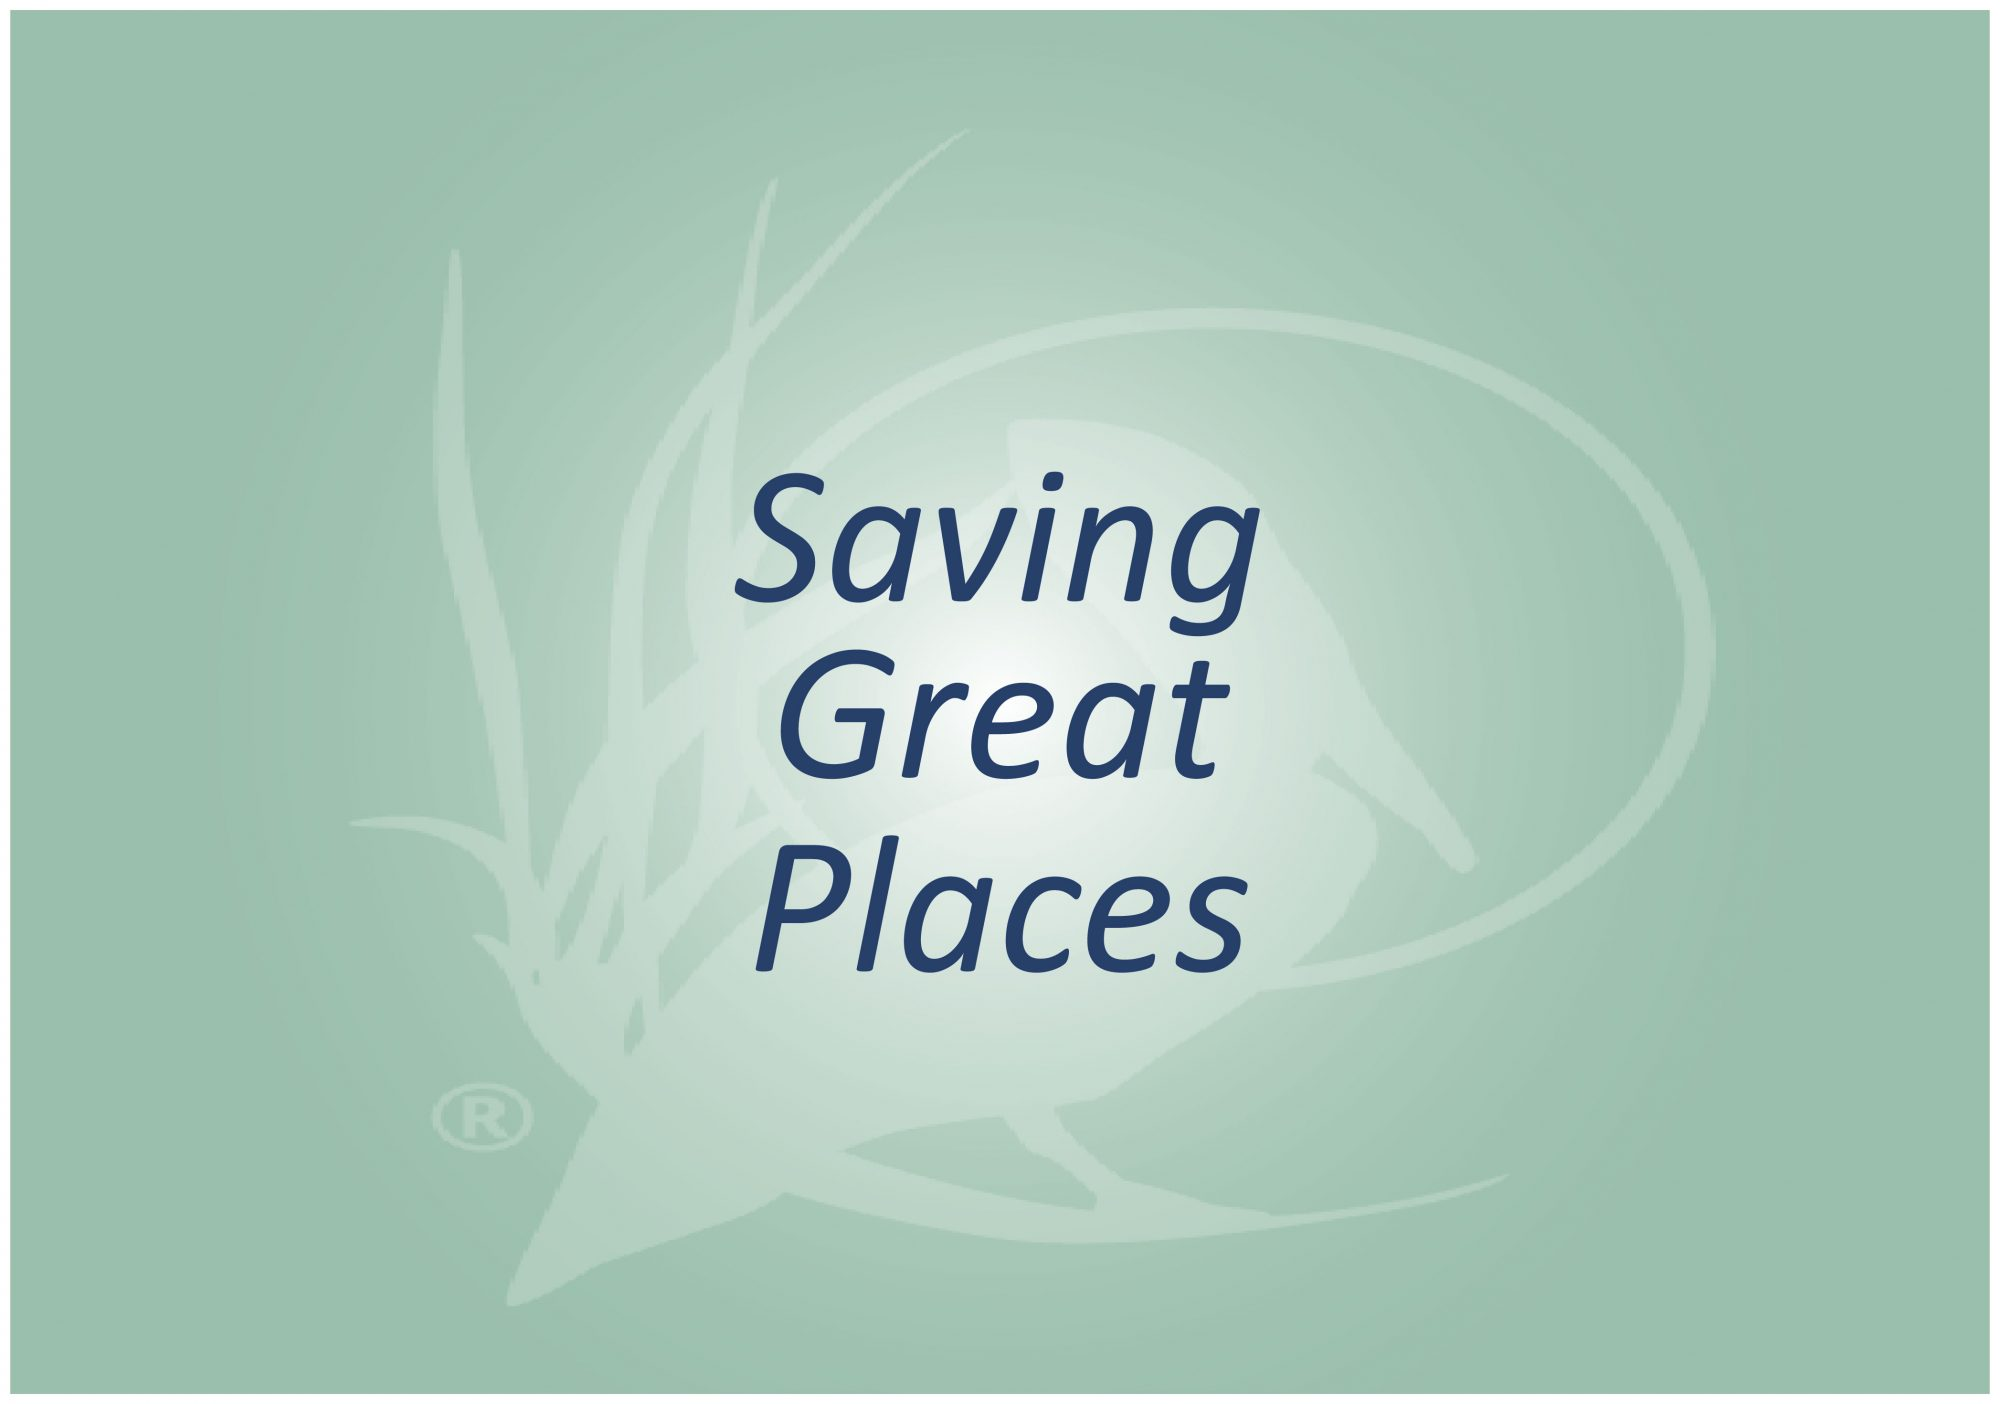 Saving Great Places